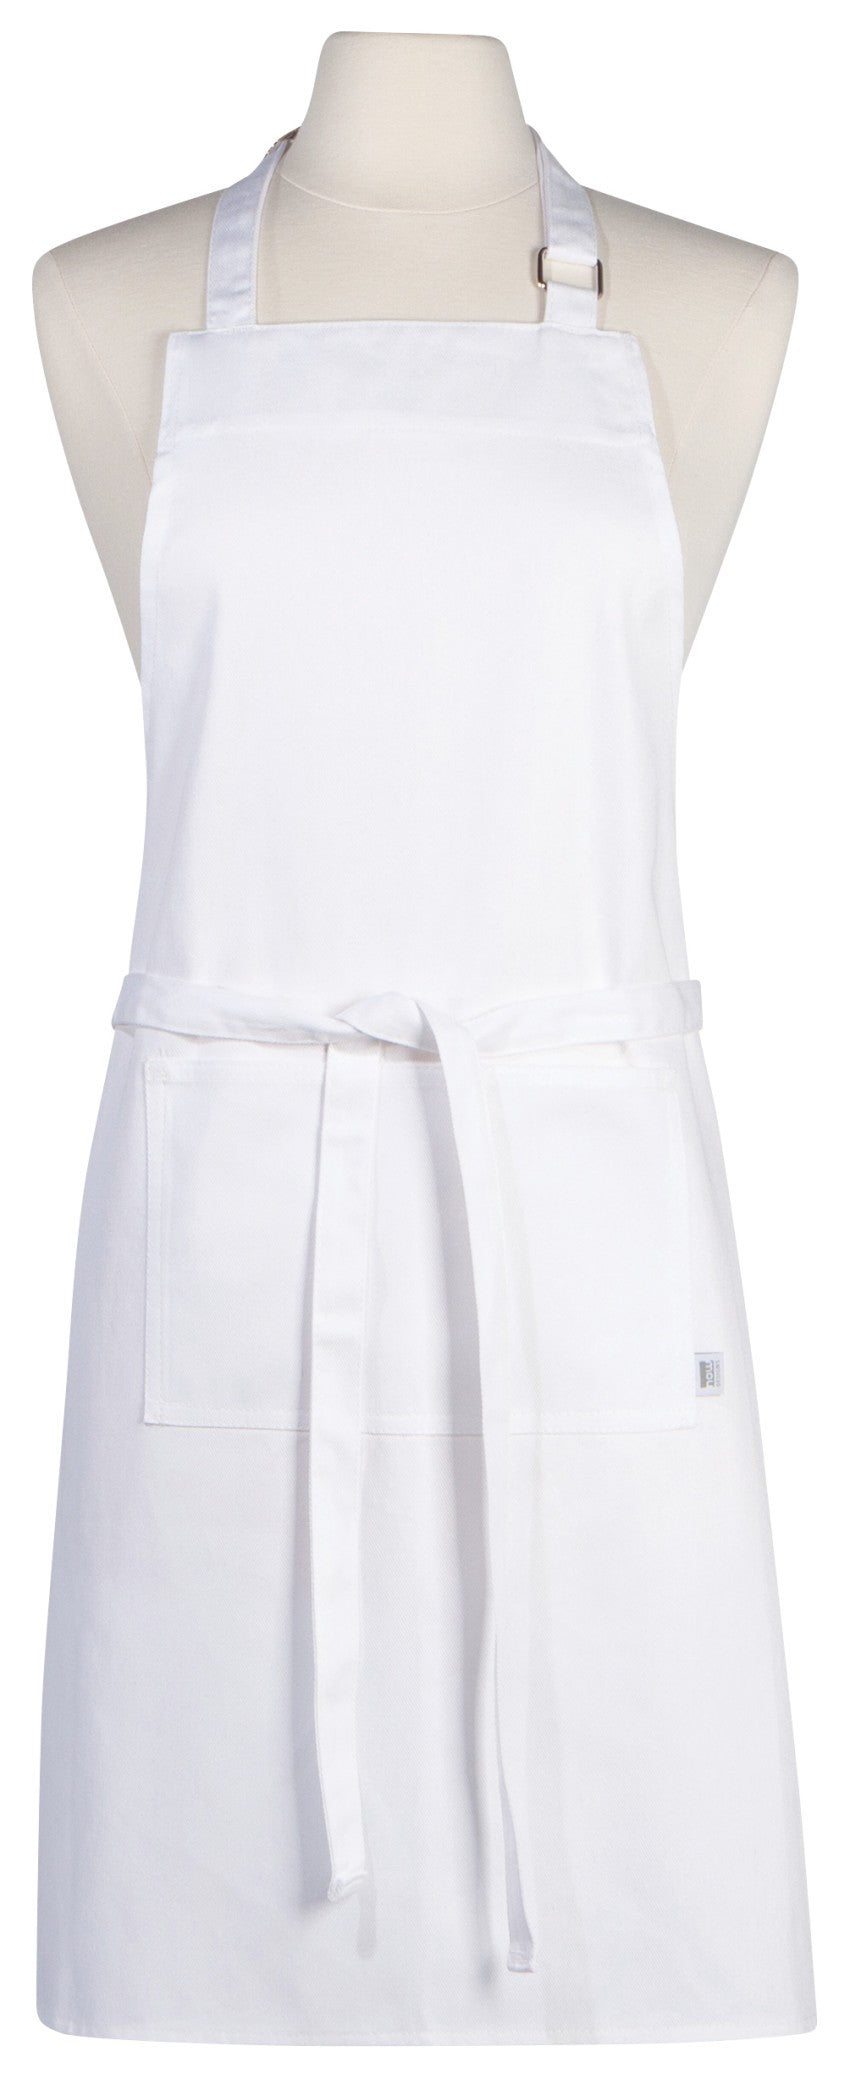 Now Designs - Basic Chef Apron, White